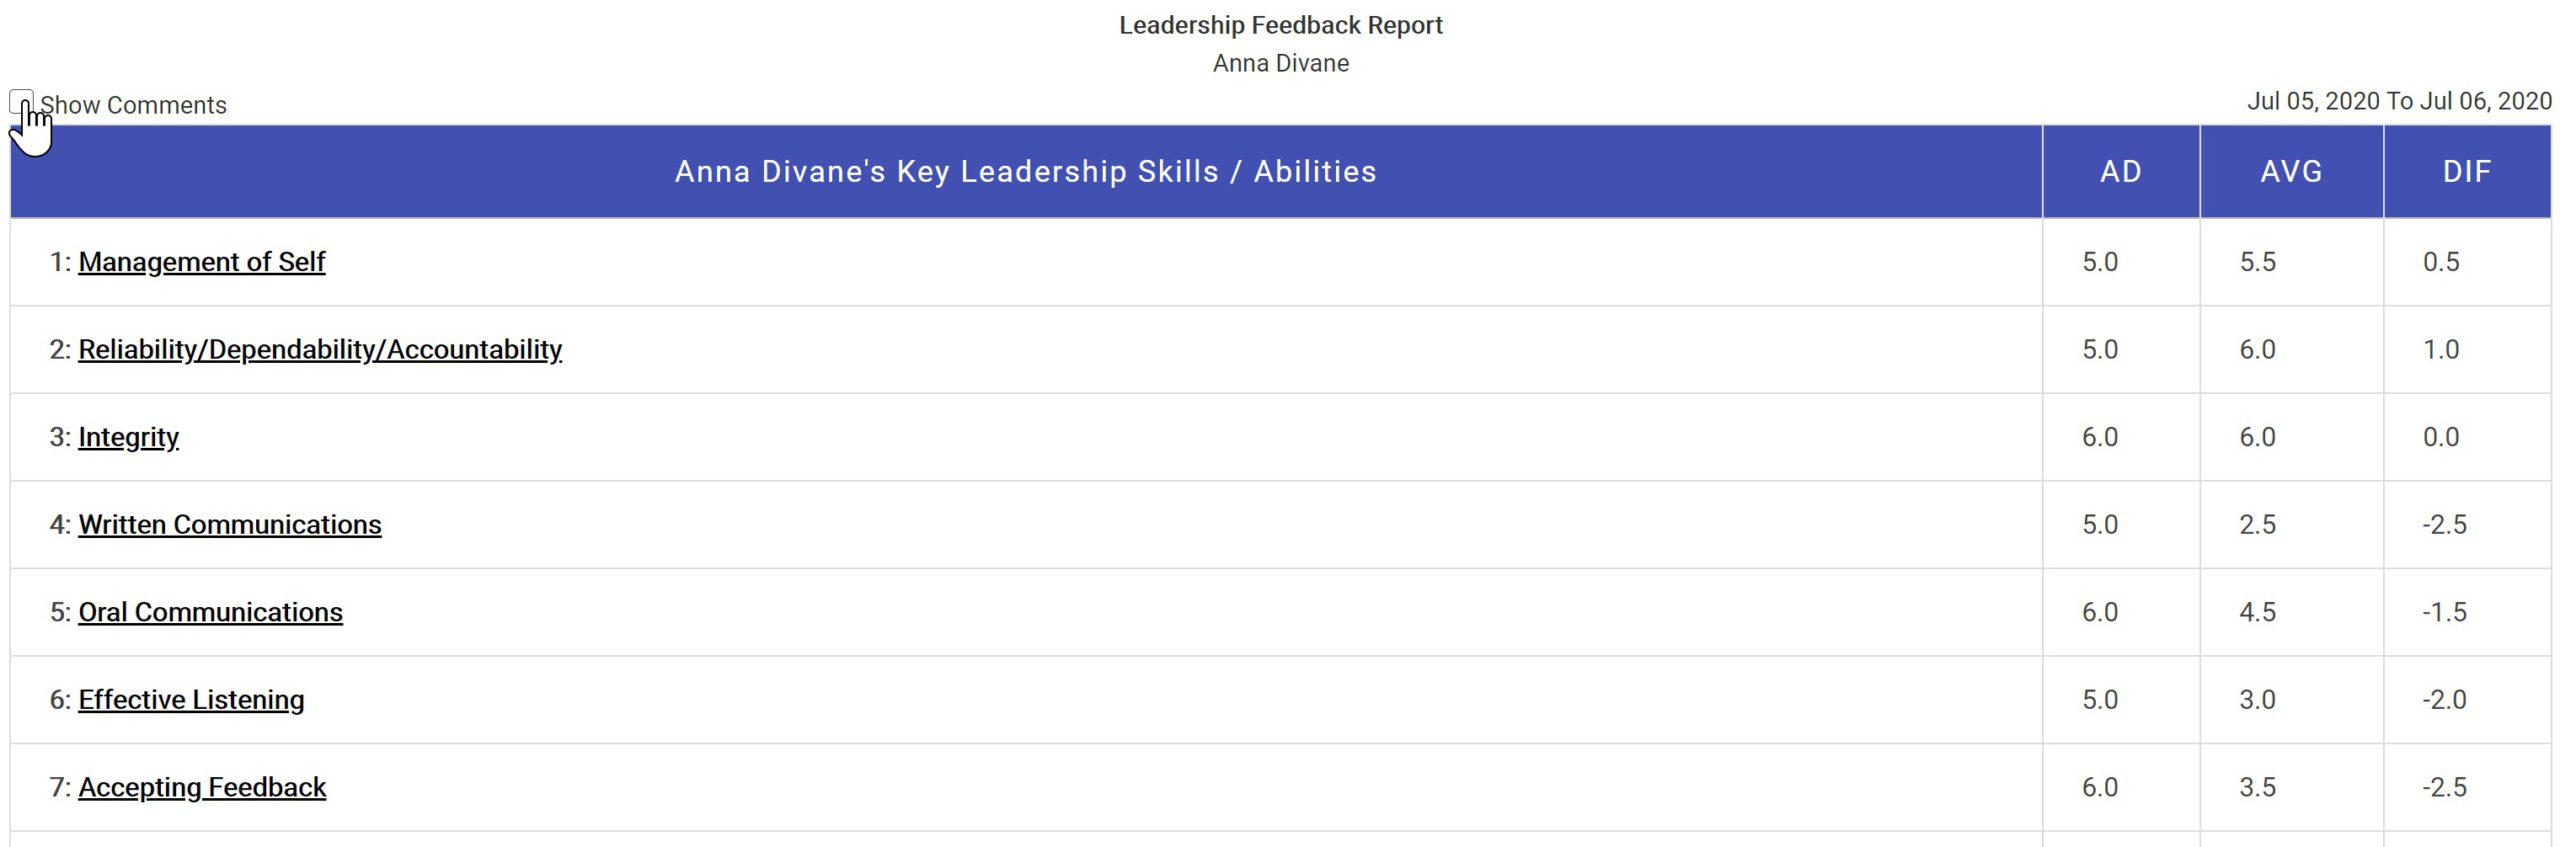 2020-07-08_Leadership Feedback Report without Comments